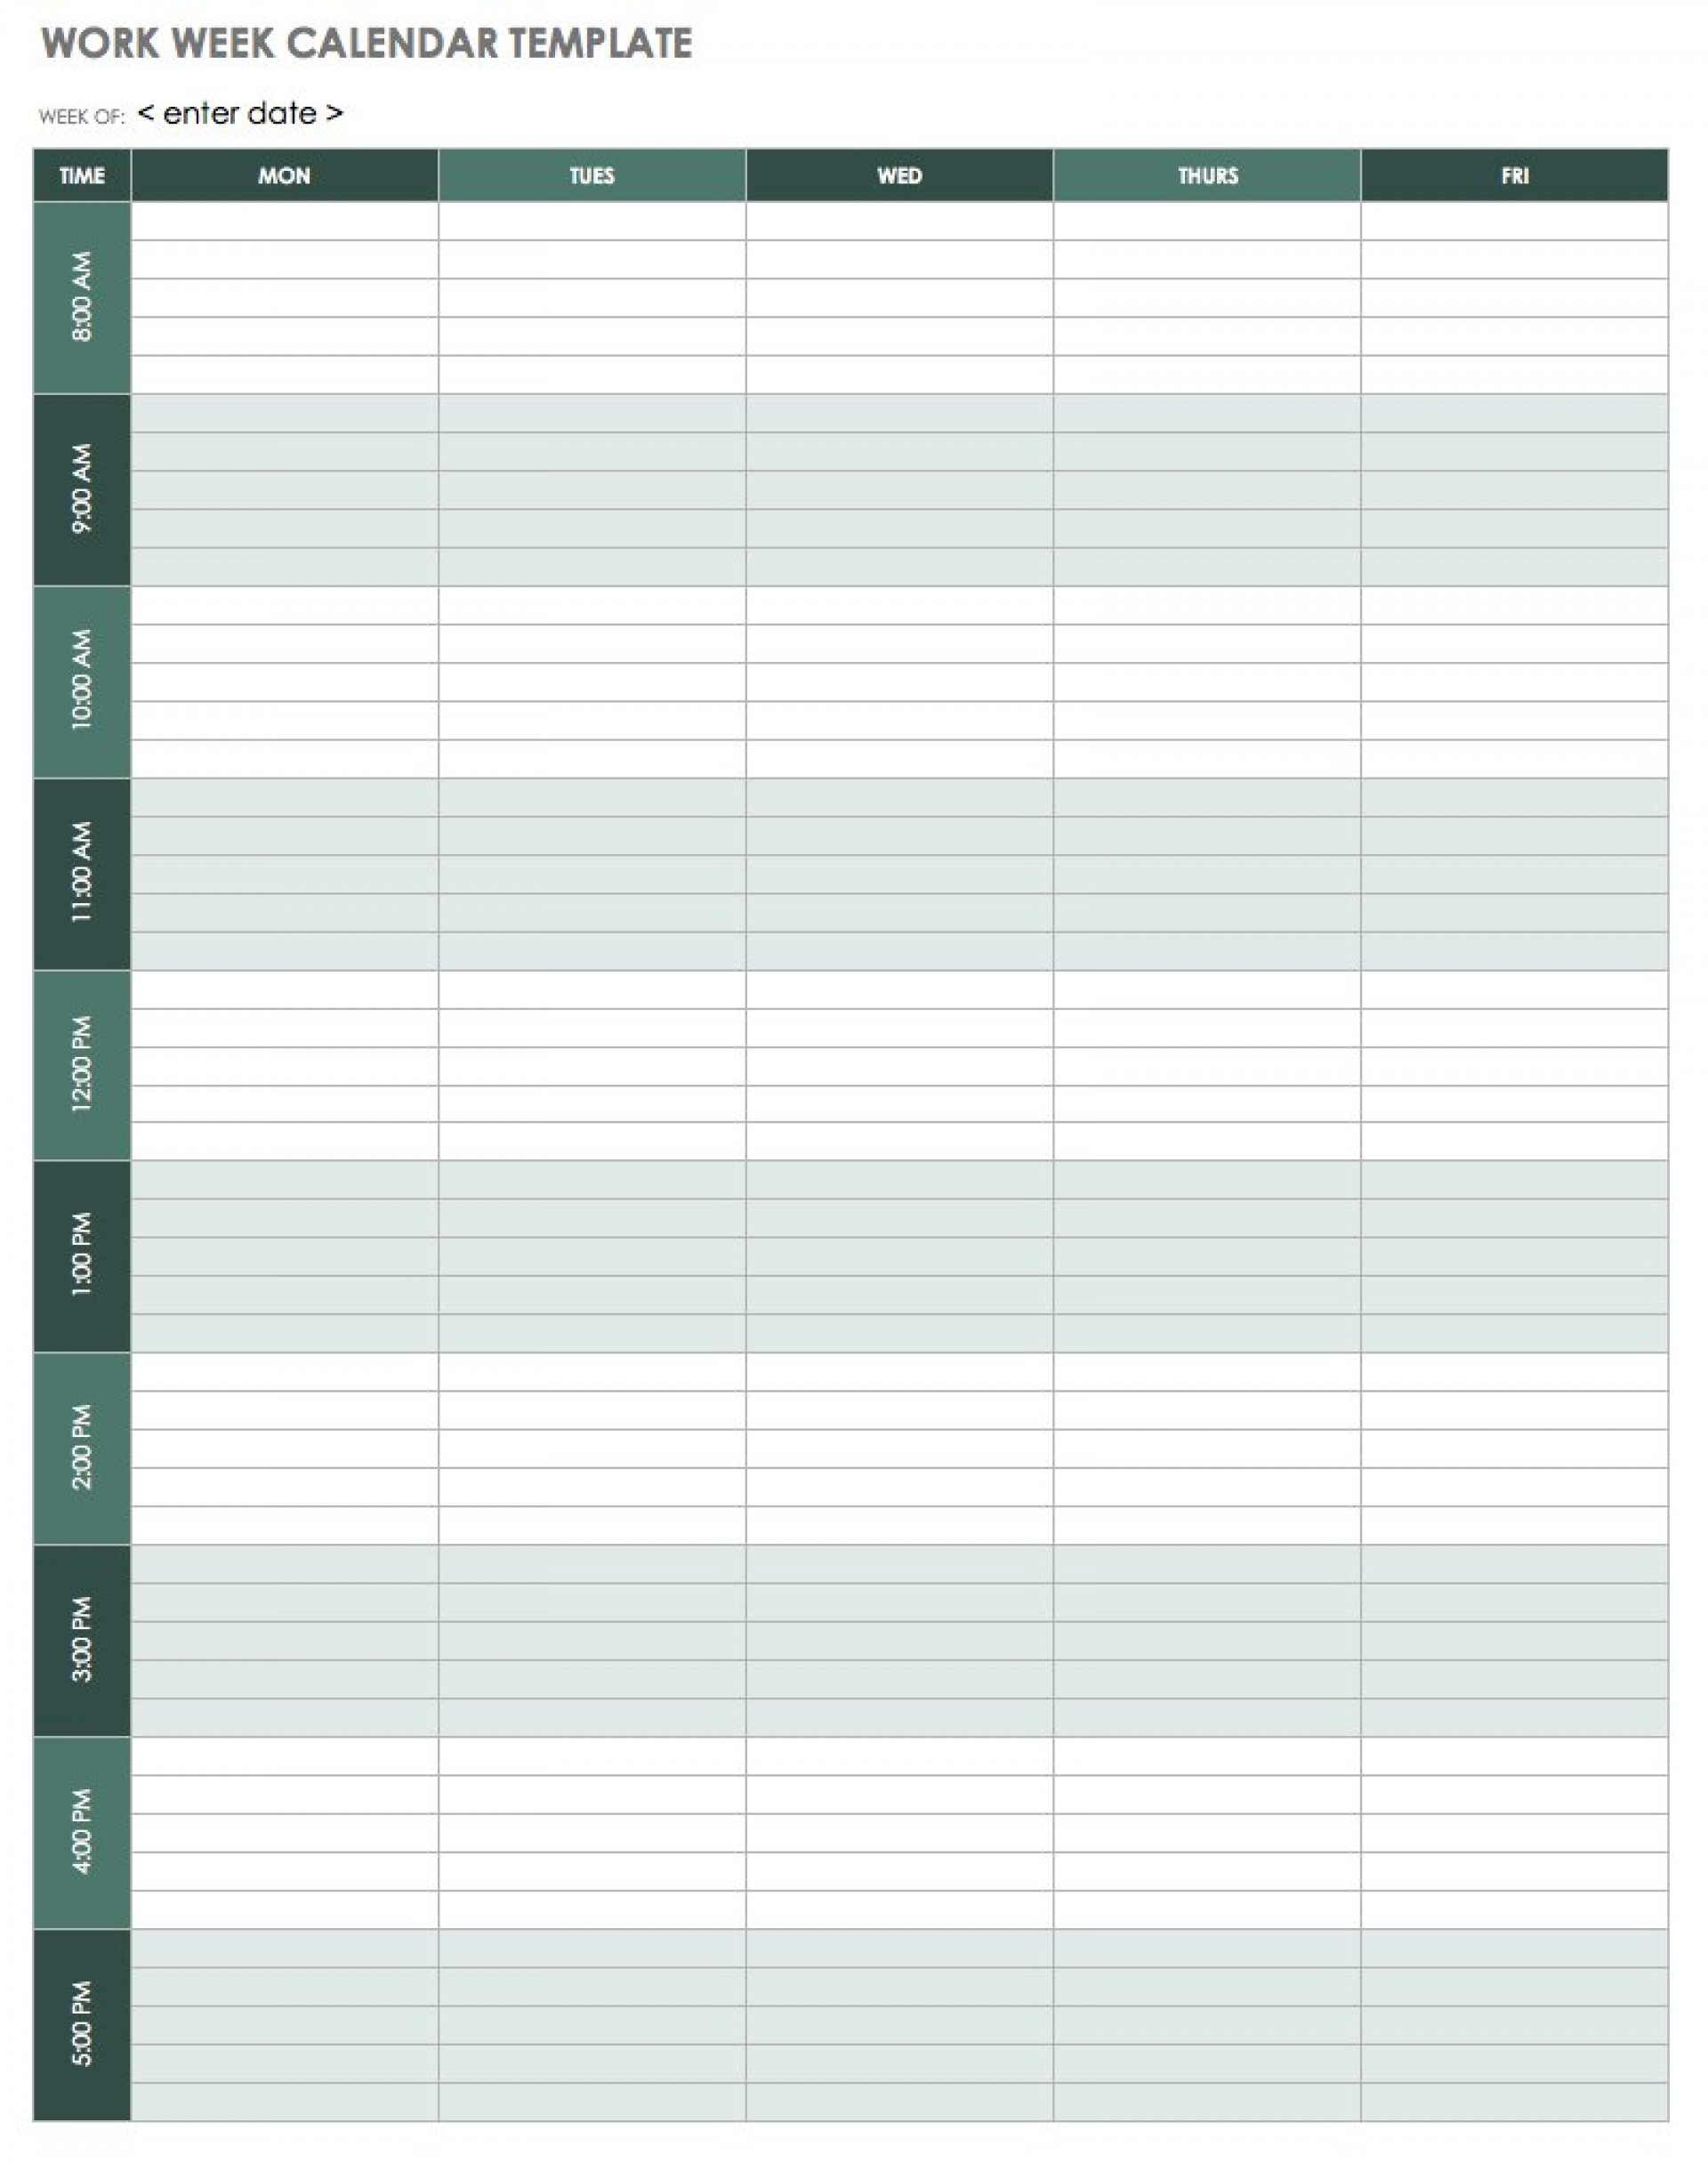 003 Printable Weekly Schedule Template Imposing Ideas Free 2 with regard to Printable Weekly Calendar